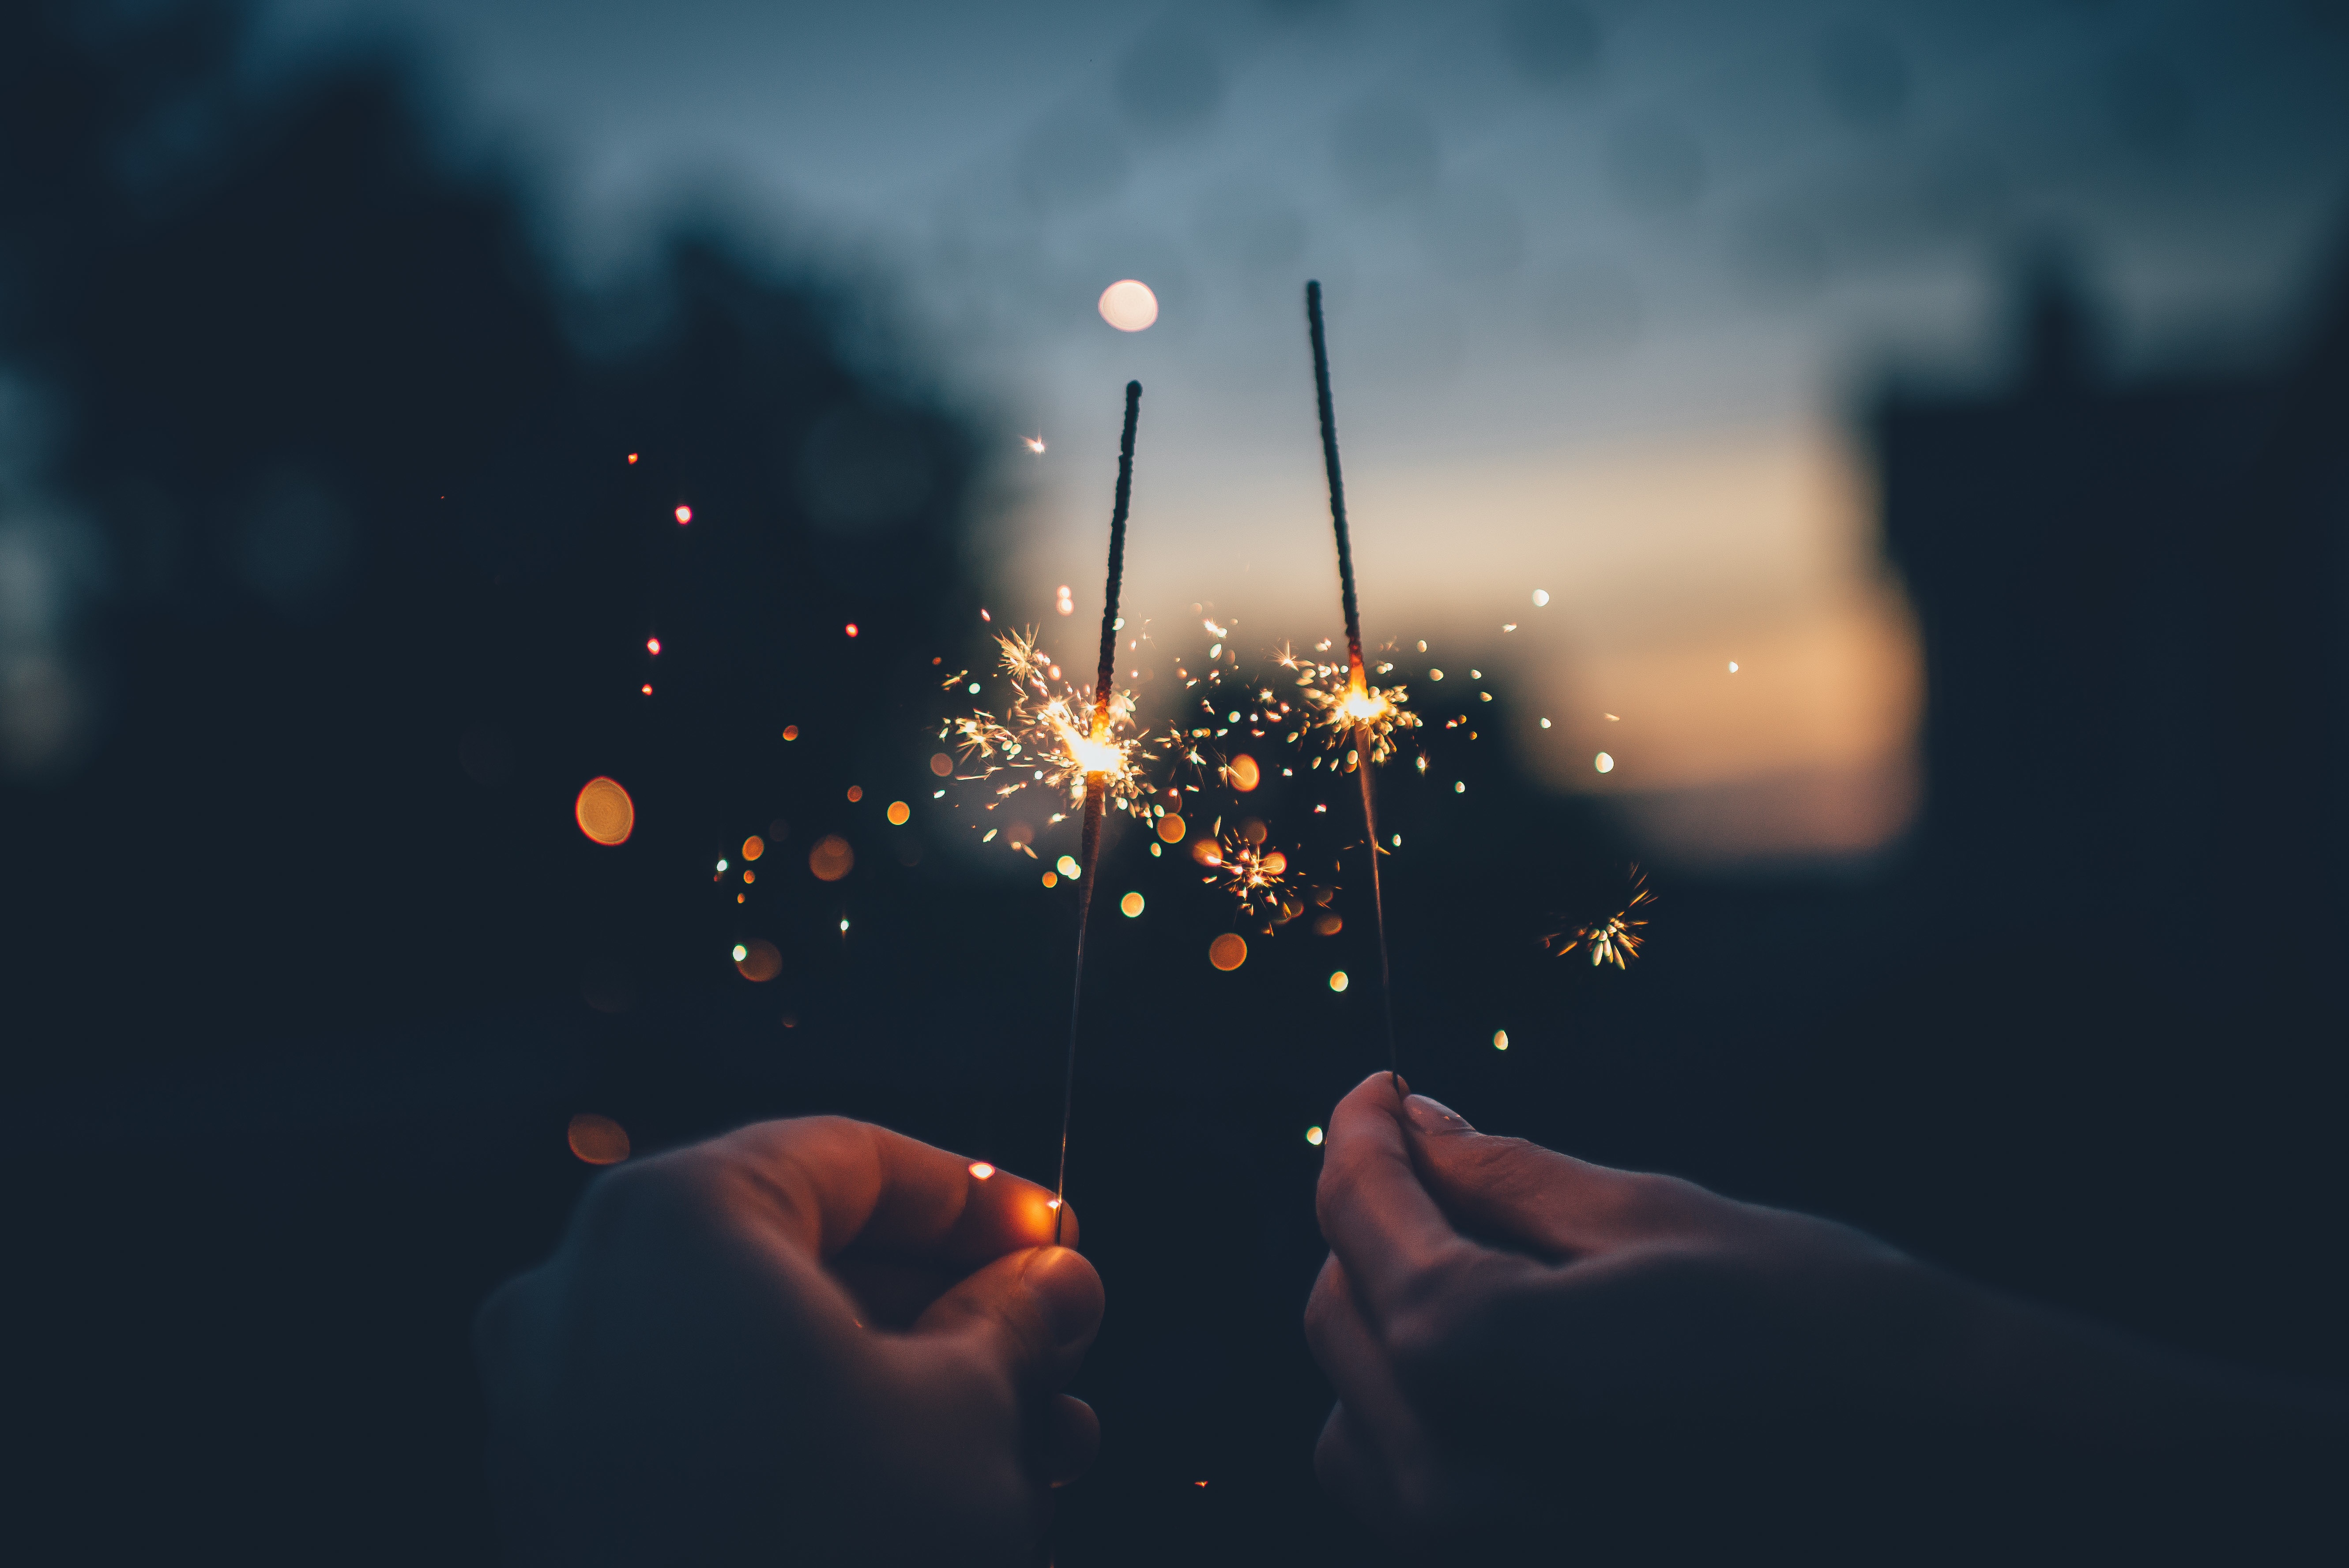 Image: two hands holding fire sparklers